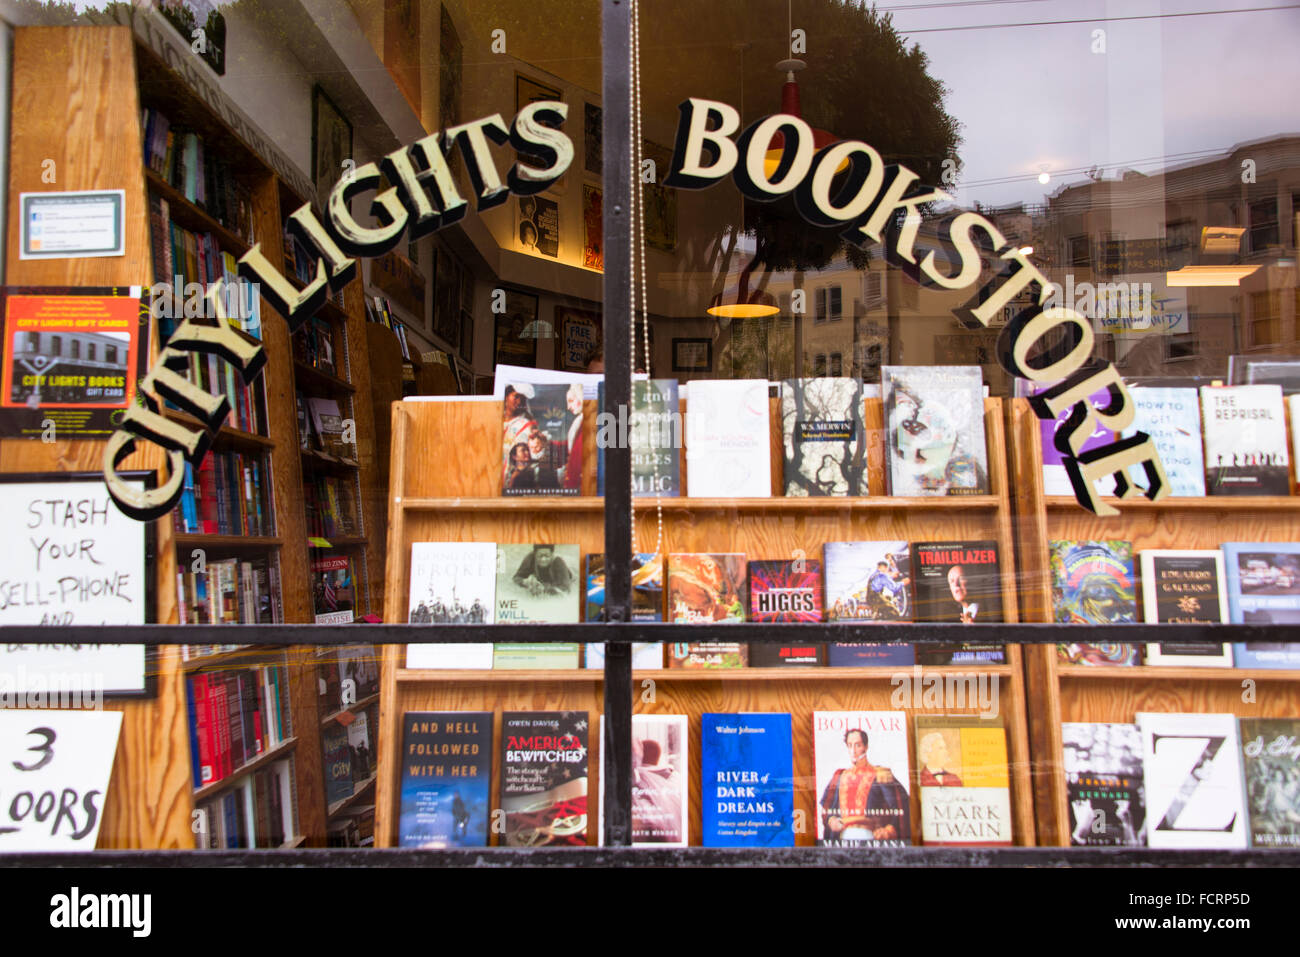 City Lights Bookstore window, San Francisco, California - Stock Image